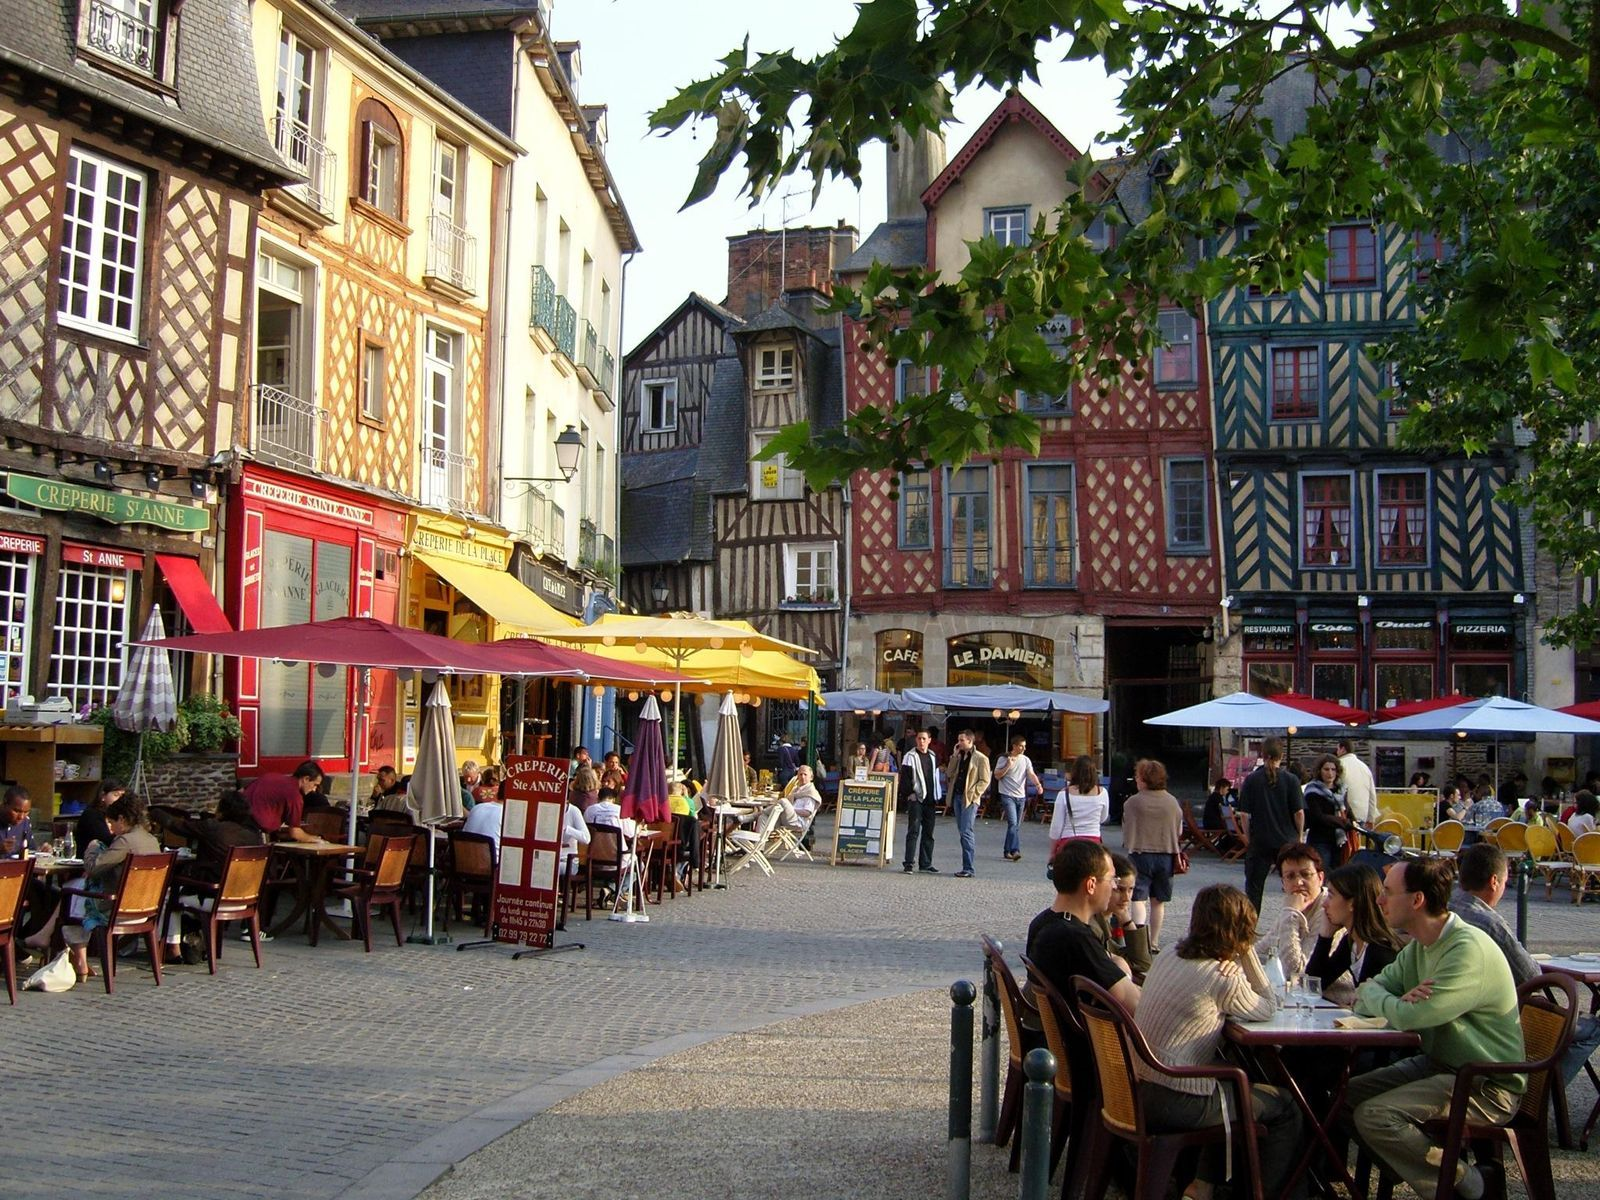 Place SainteAnne, Rennes (Brittany). Must go here someday